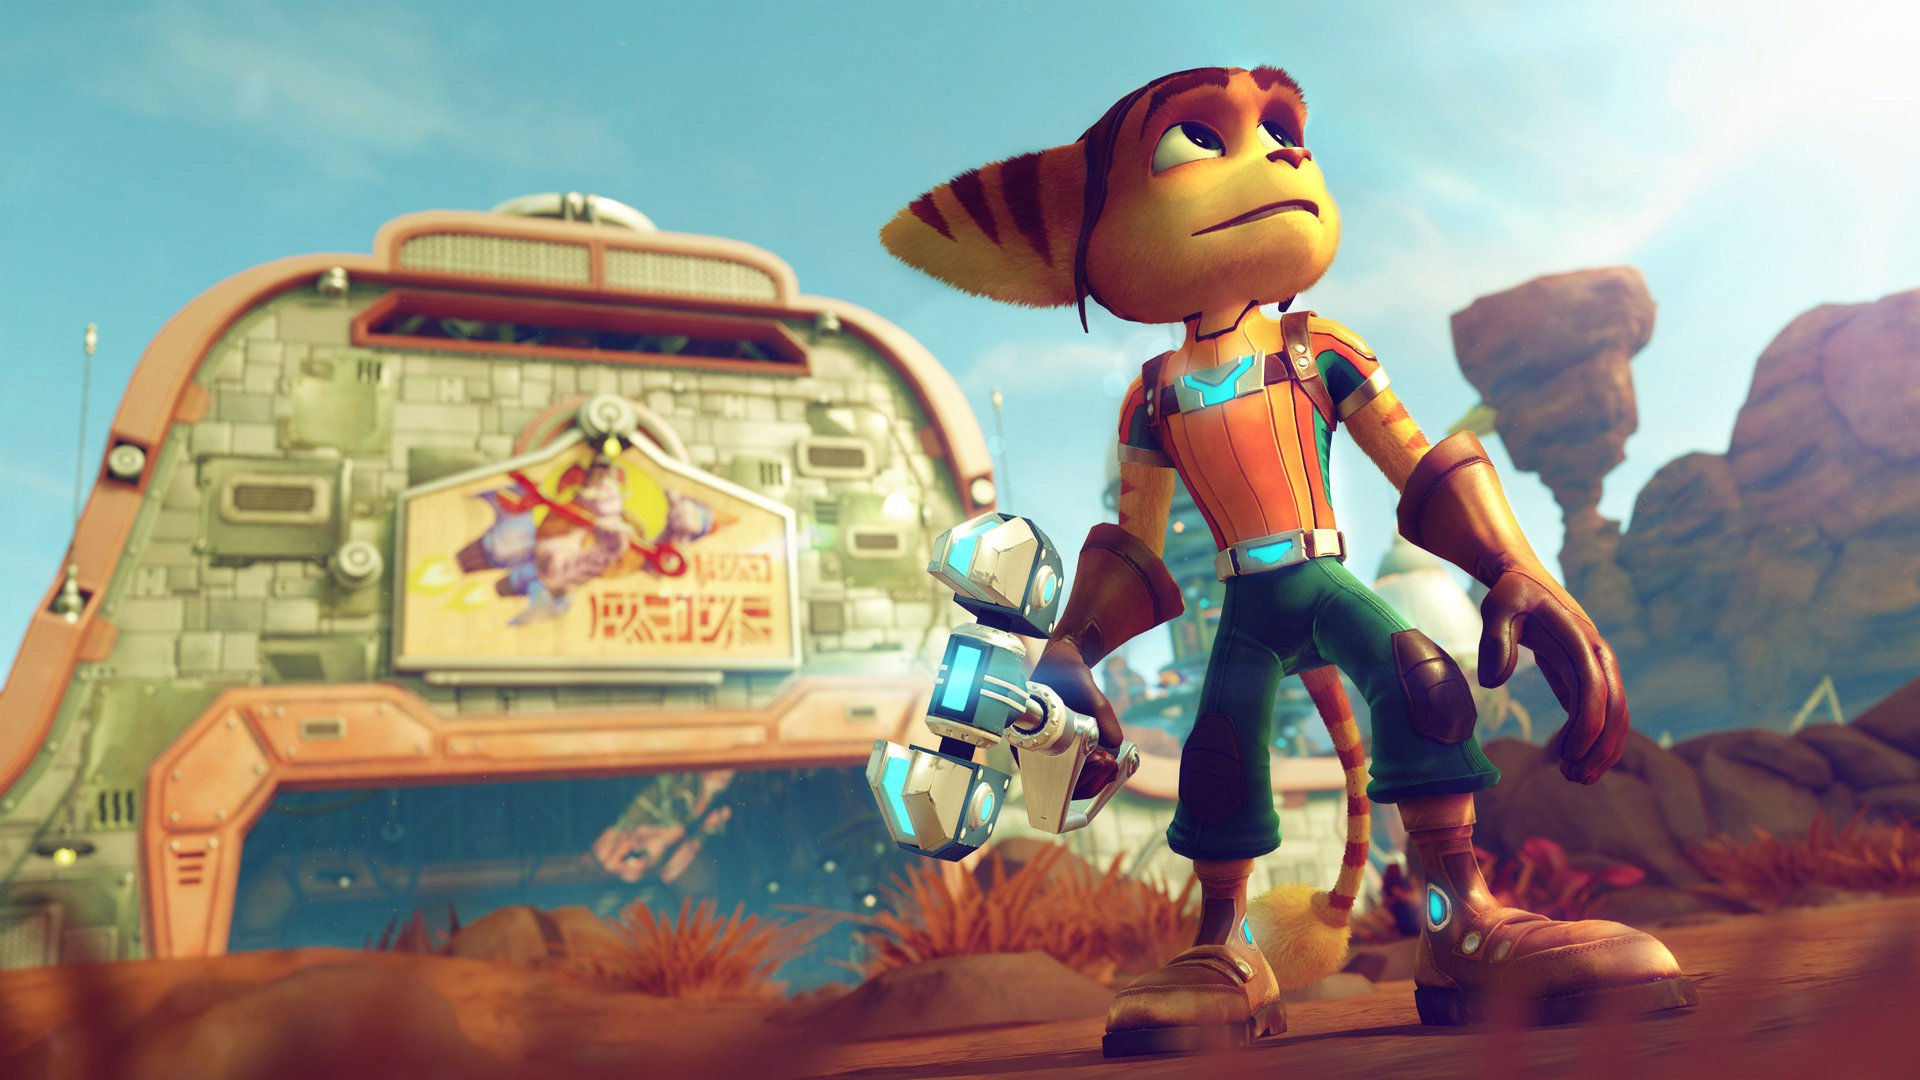 Ratchet & Clank will have a 60fps update for PS5 in April, so hang tight if you're about to play it screenshot